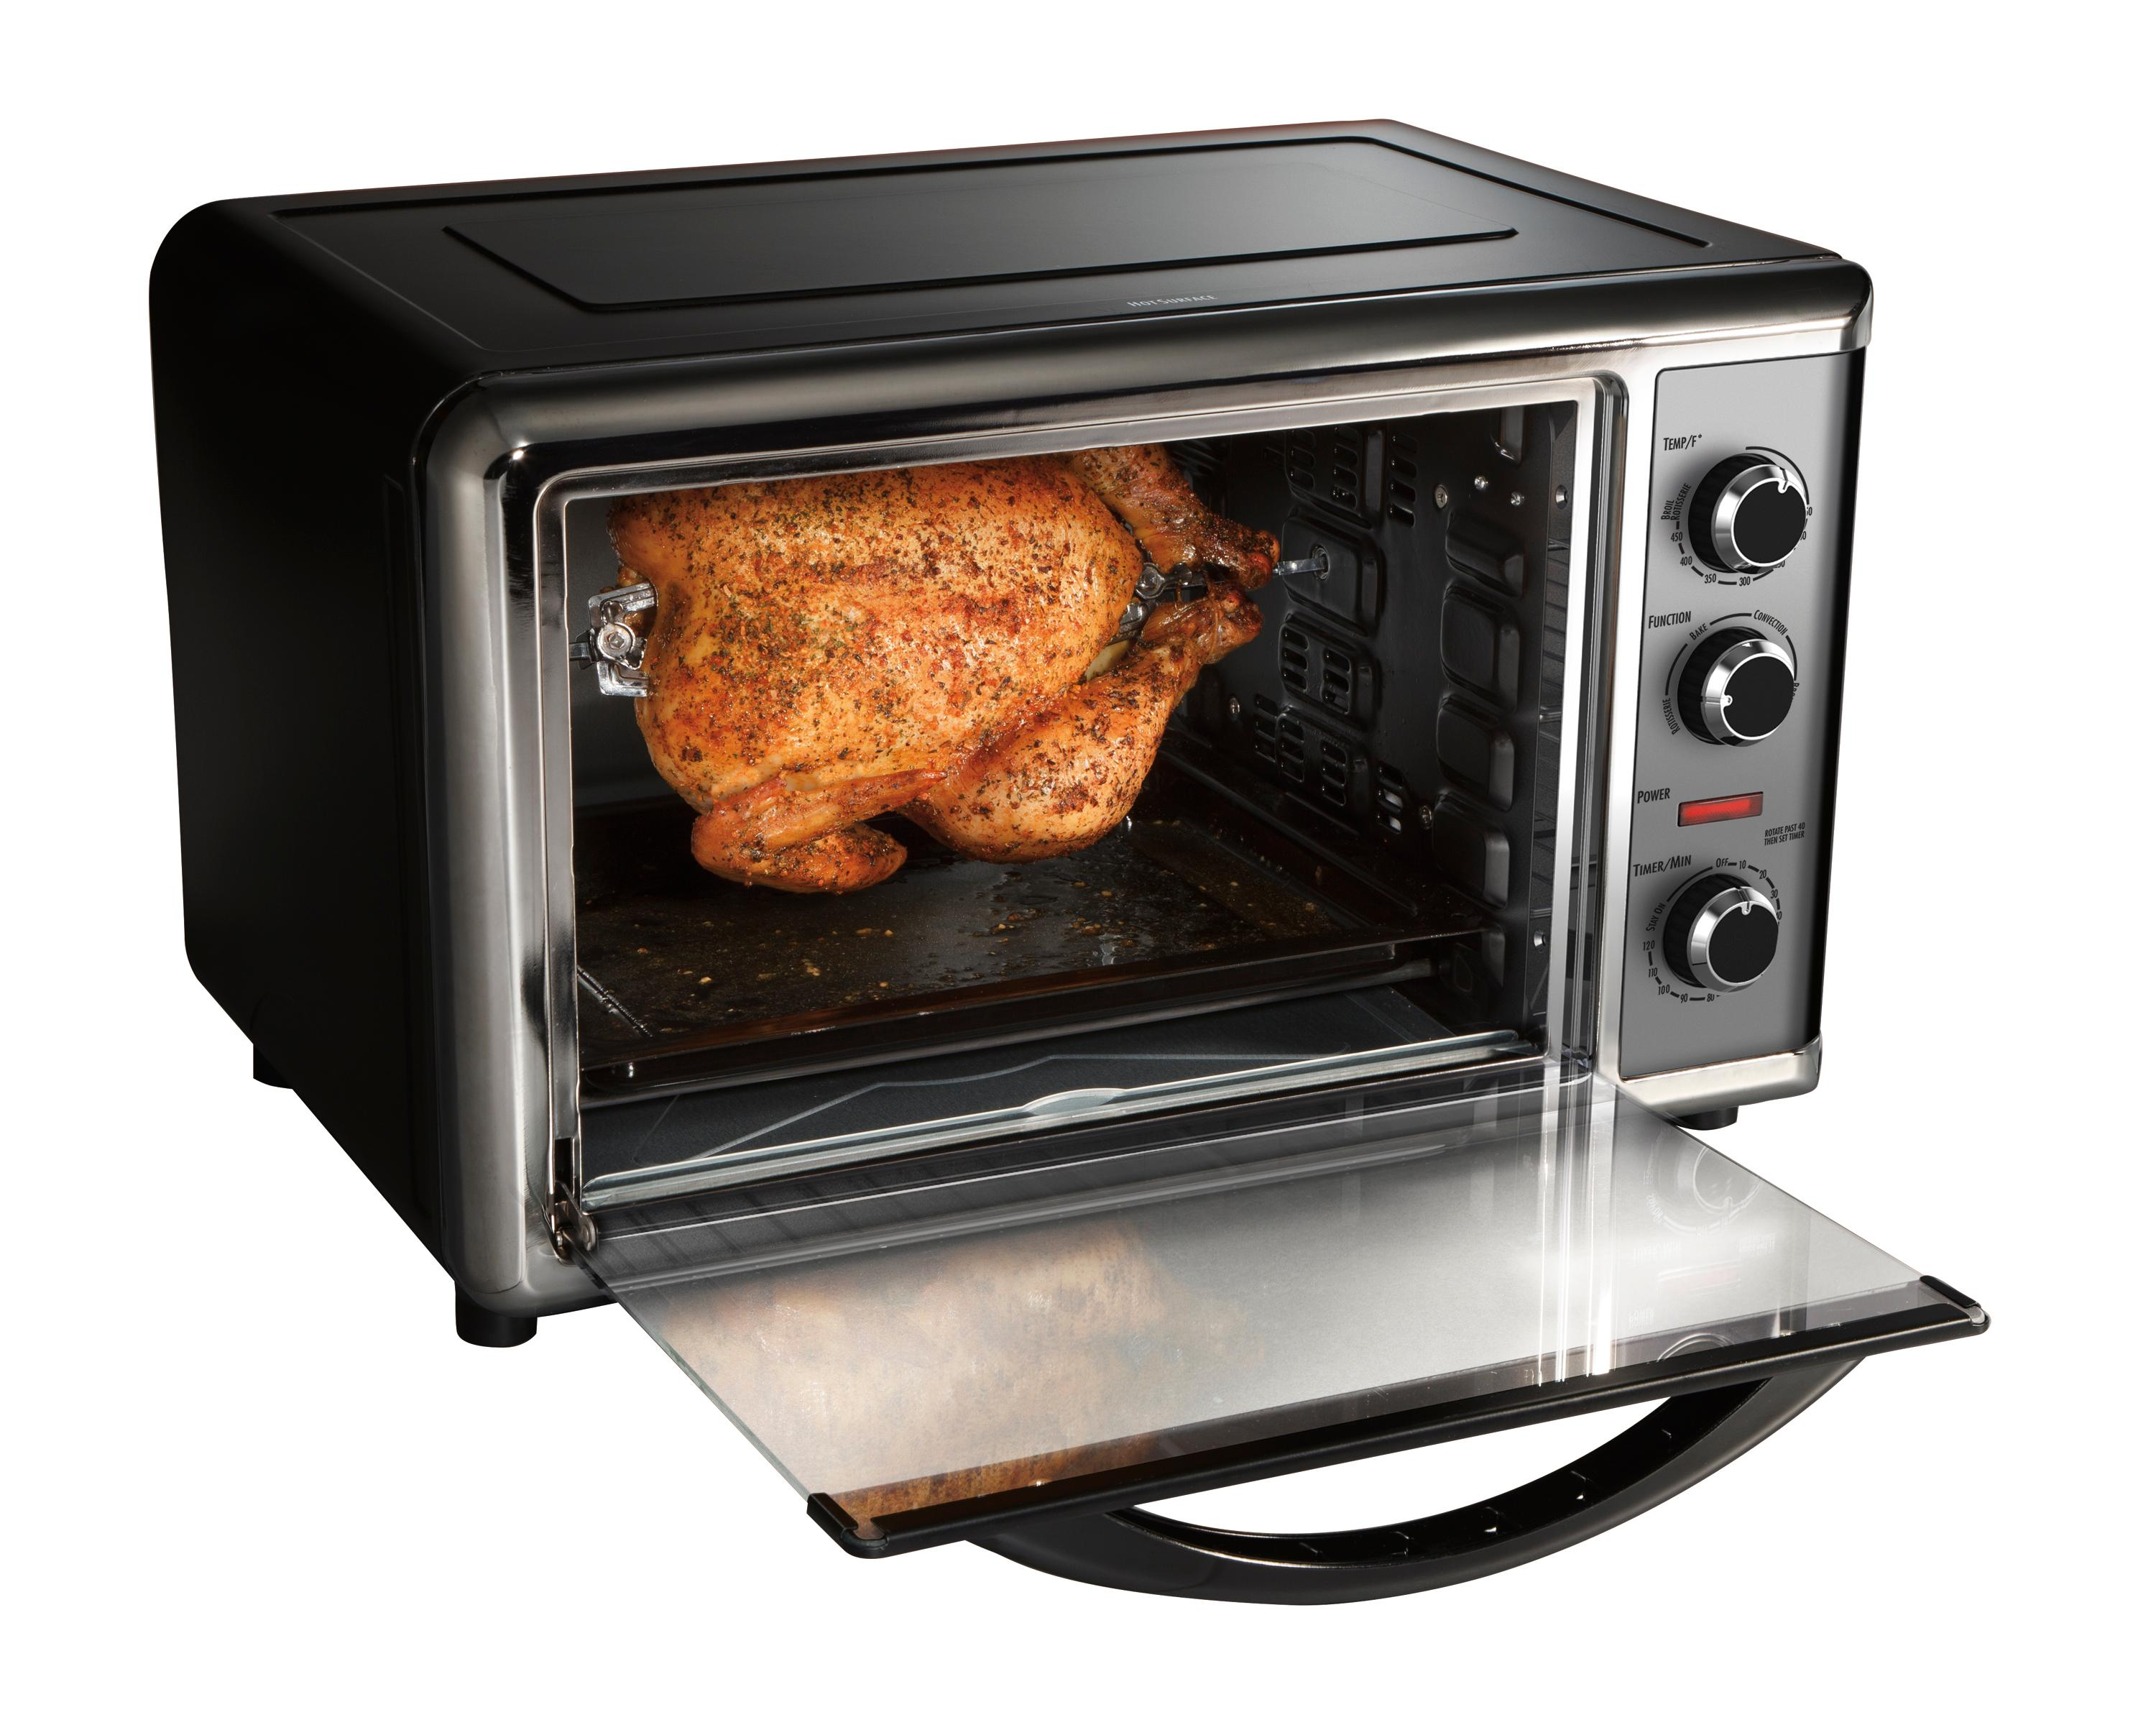 hamilton beach countertop oven with convection and rotisserie manual